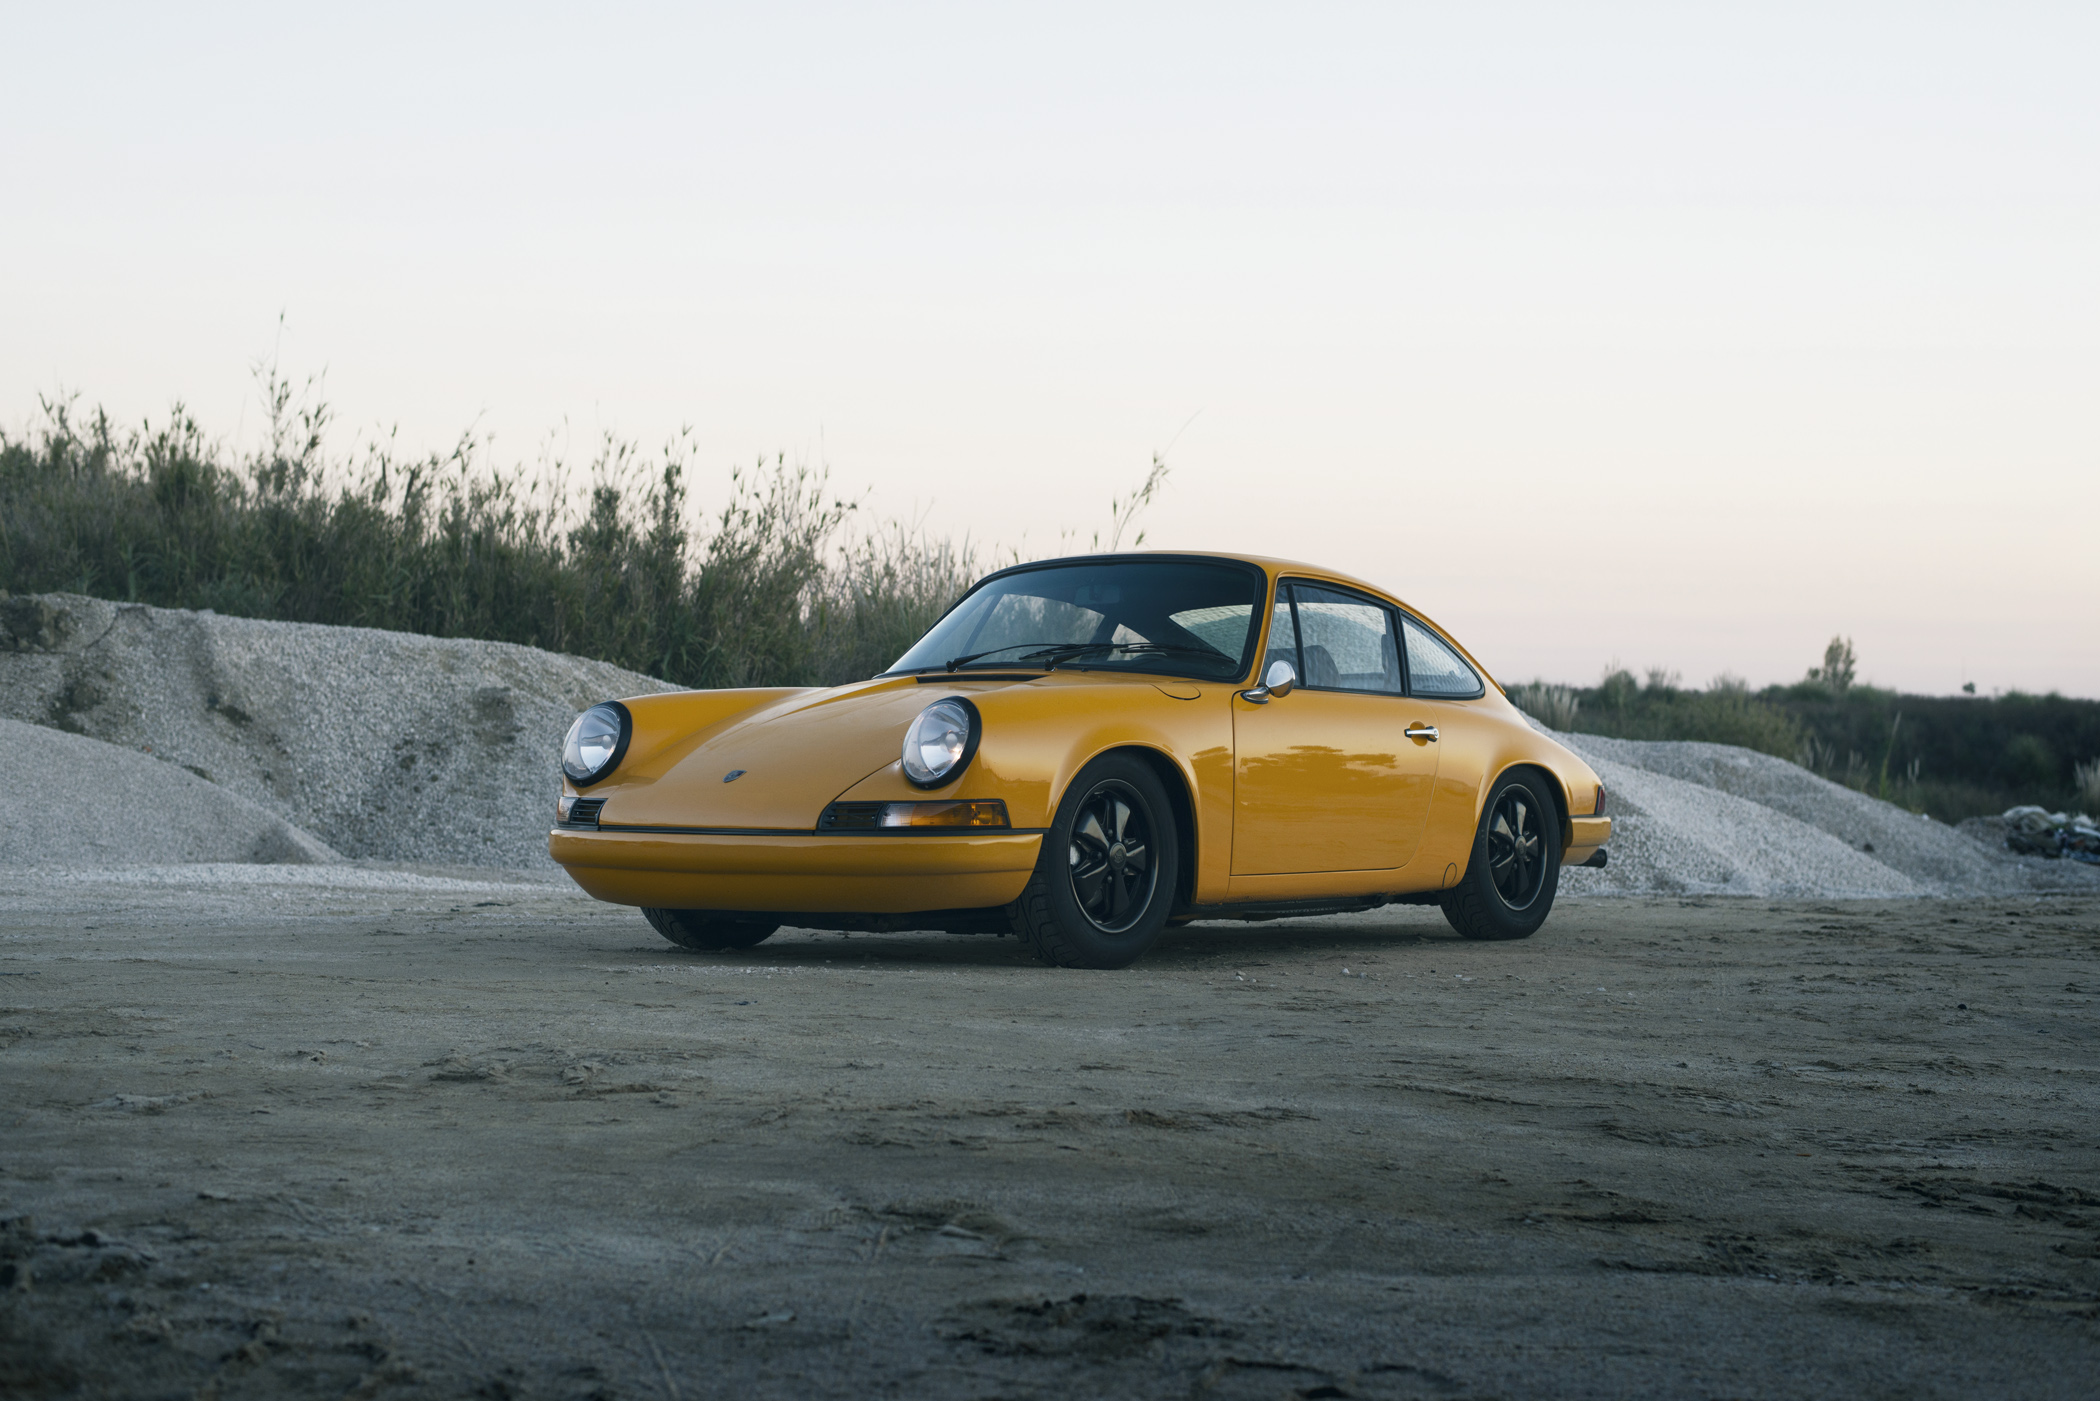 prsphoto_porsche_911t_yellow_05122018_185.jpg